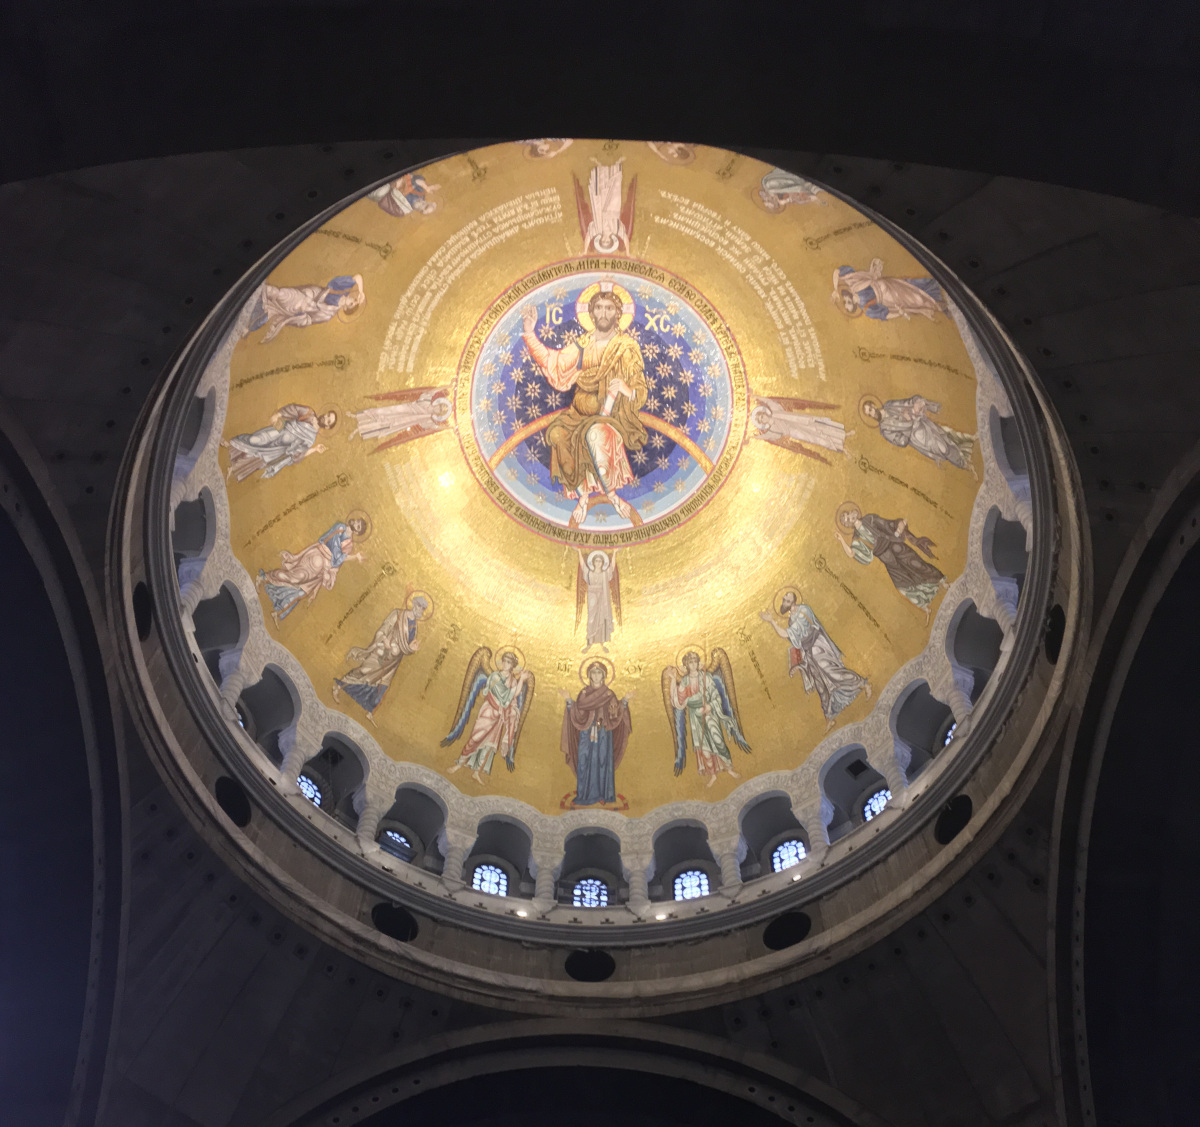 Giant mosaic of the Ascencion of Jesus in the Dome of the St. Sava's Church